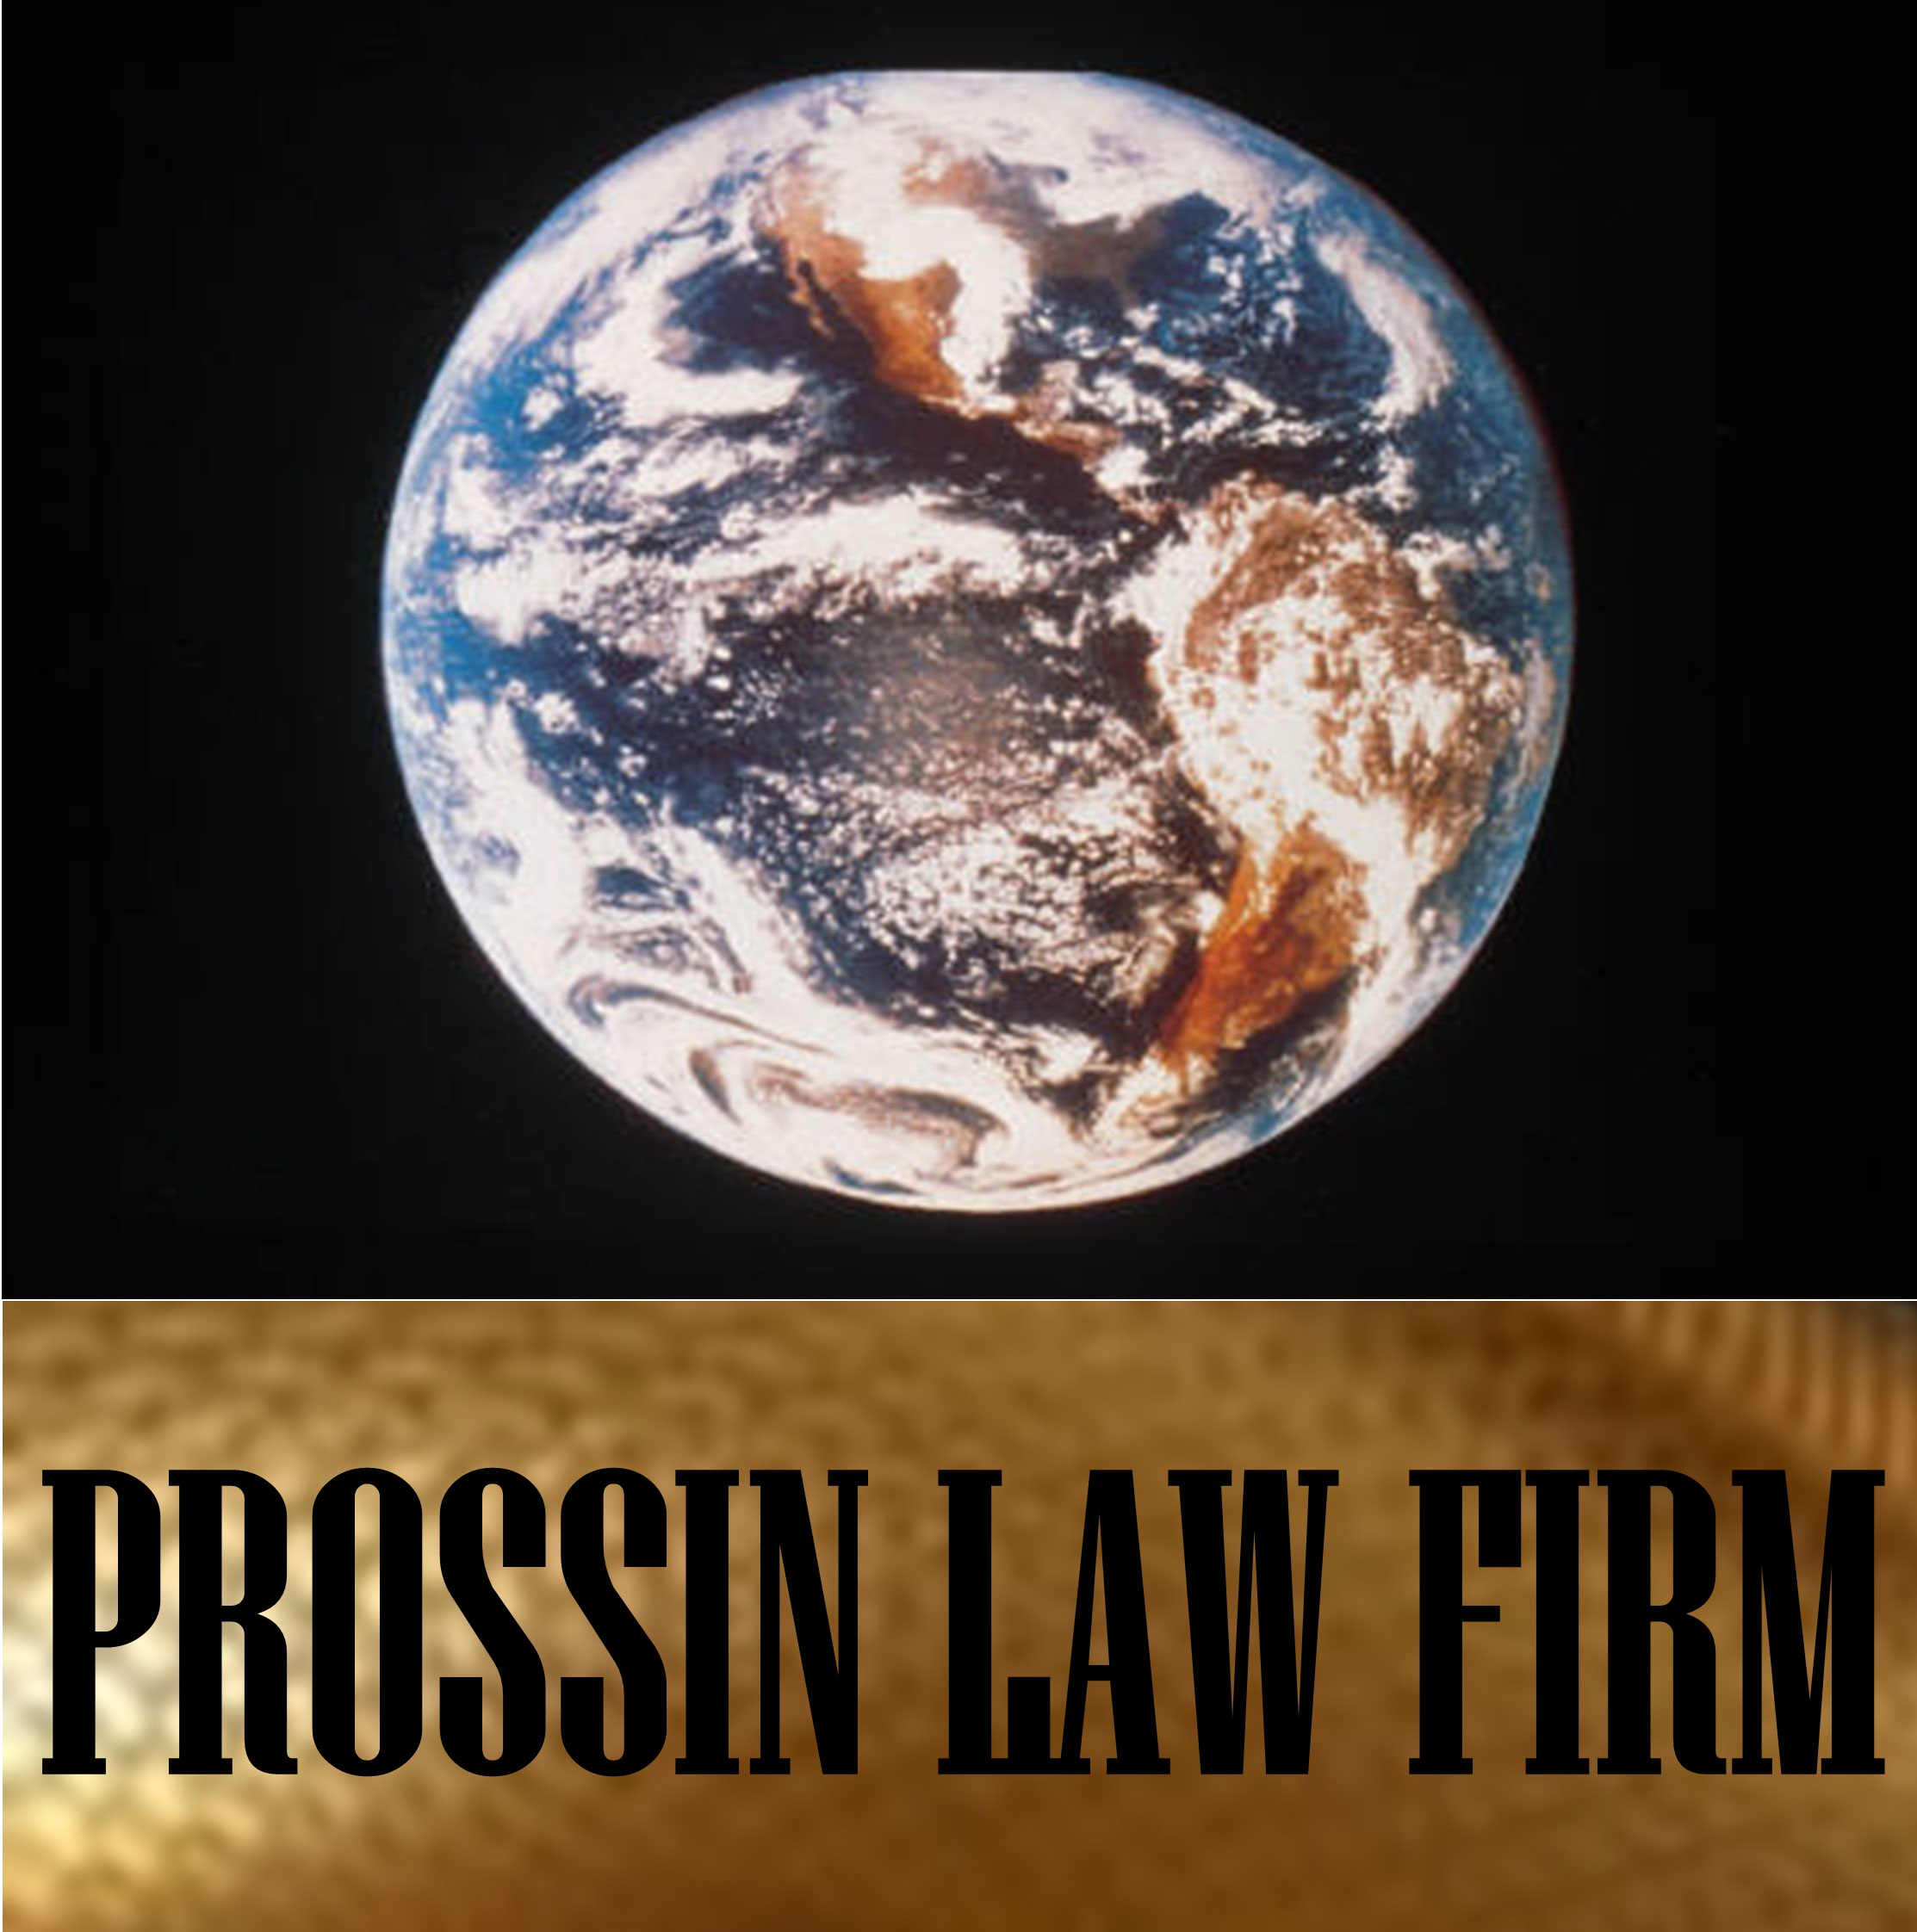 Prossin Law Firm